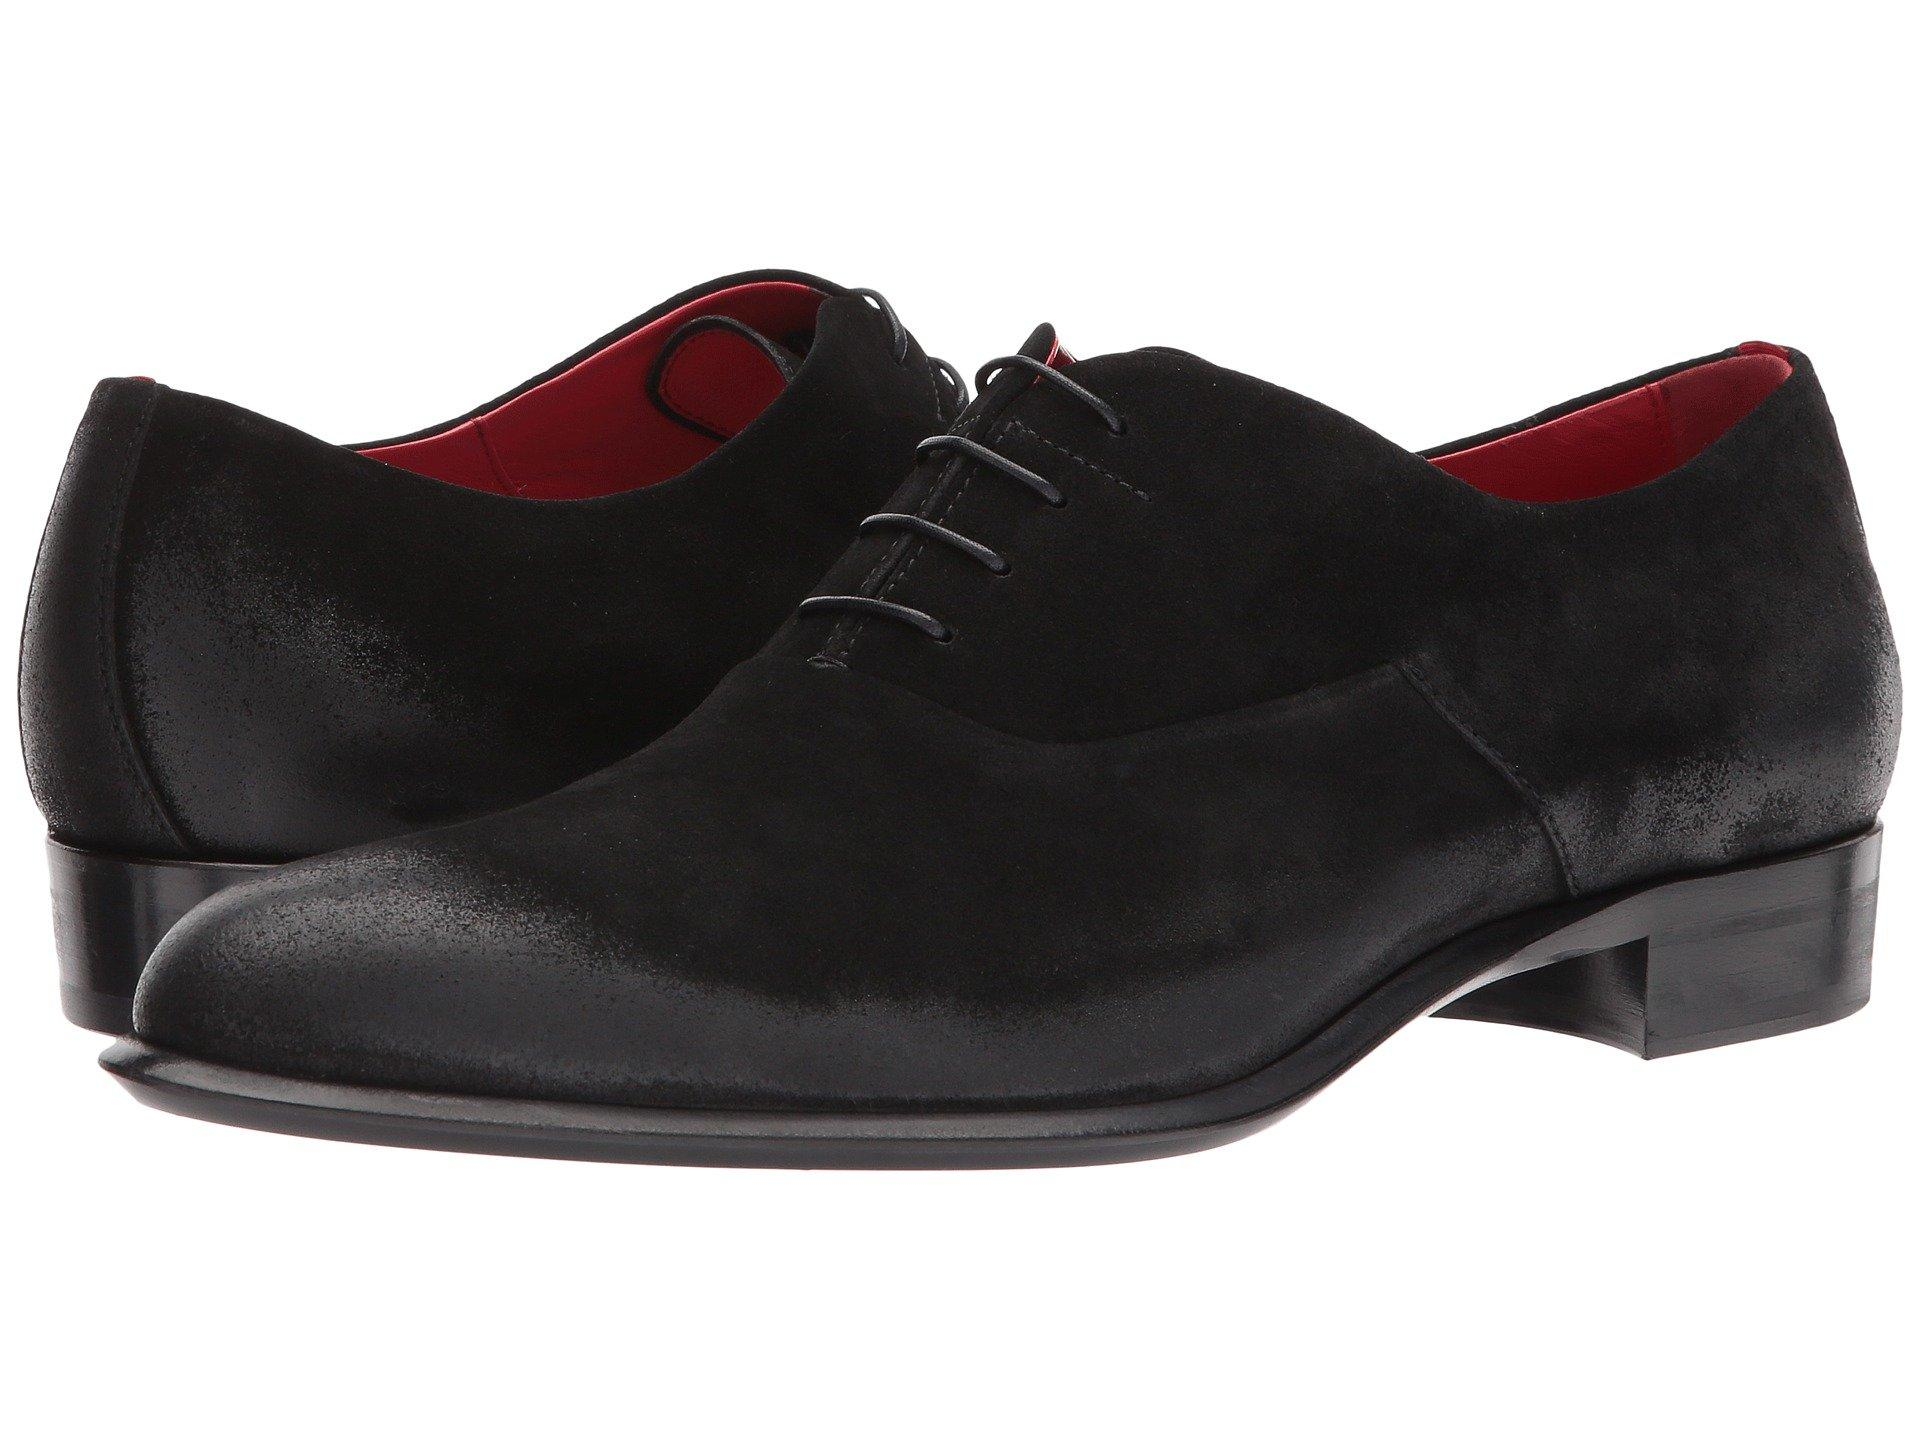 Hugo Boss Deluxe Suede Lace-up Oxford By Hugo In Black